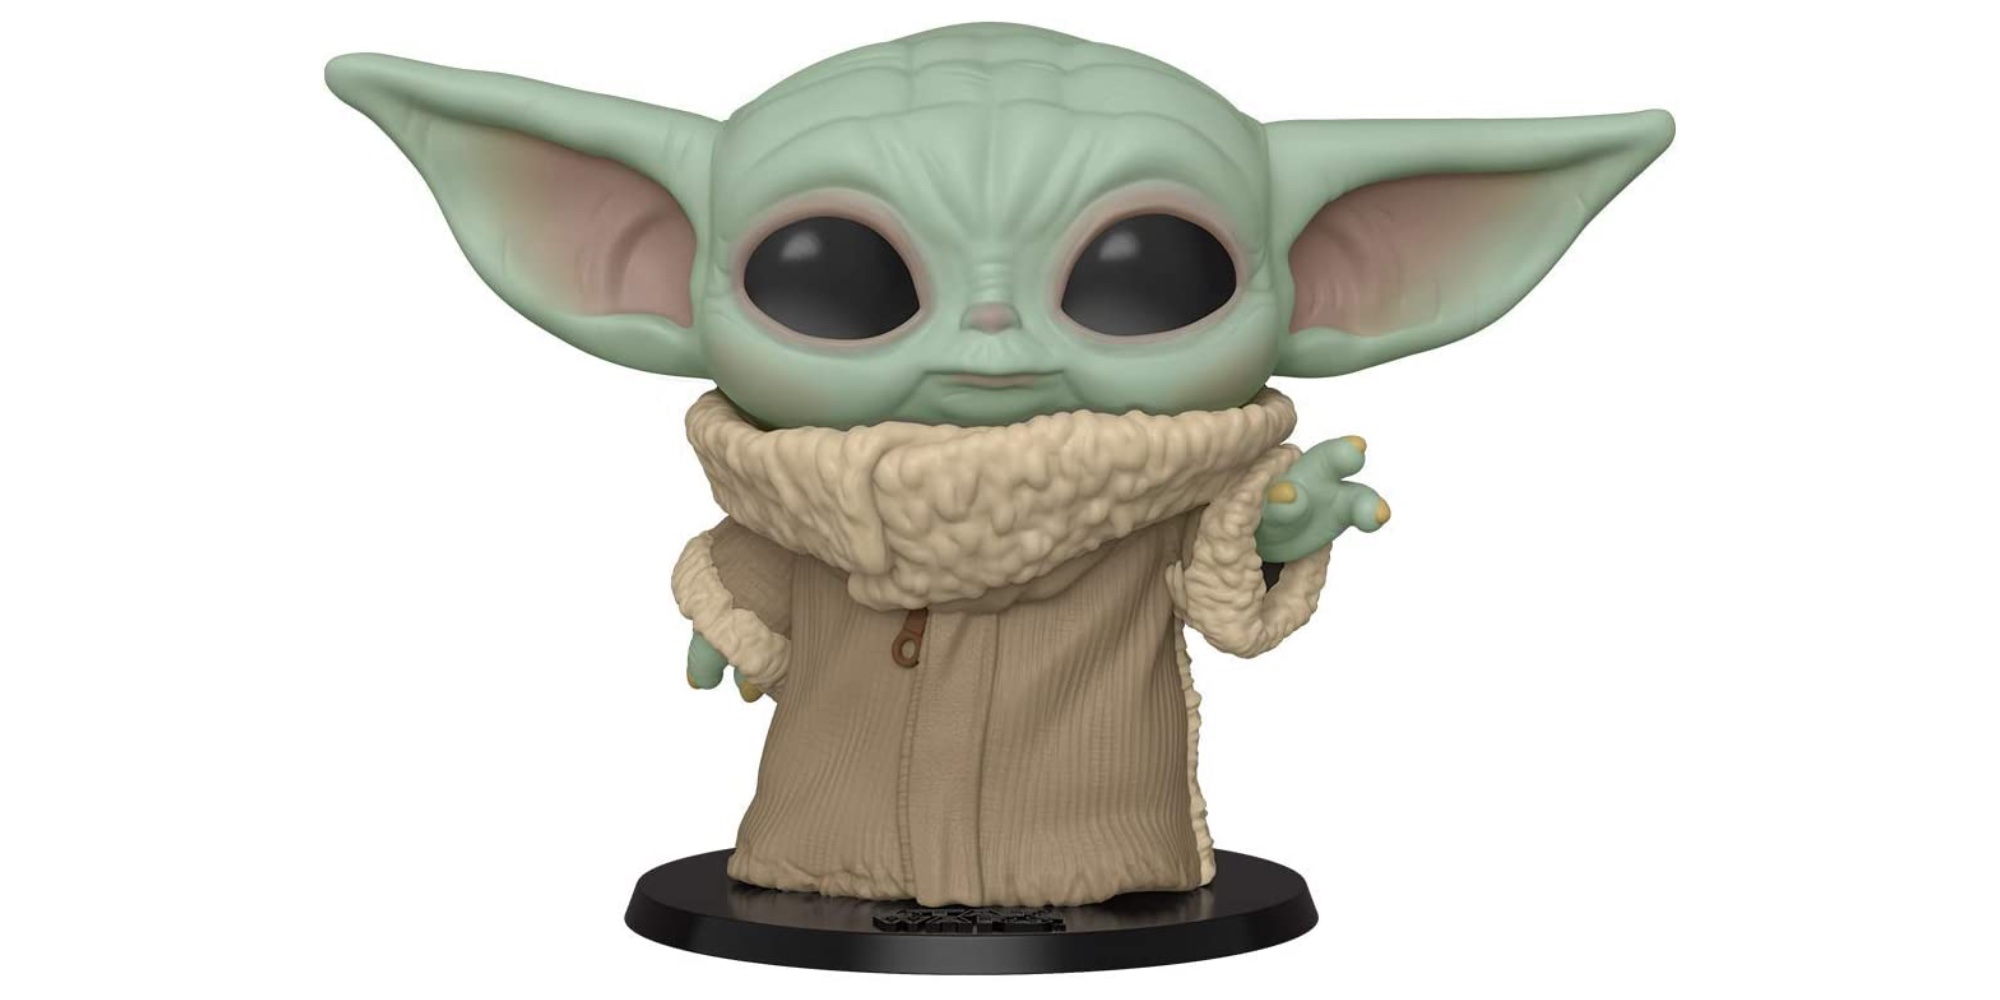 Save on Star Wars Funko Pop! figures: Super Sized Baby Yoda $26, more from $5